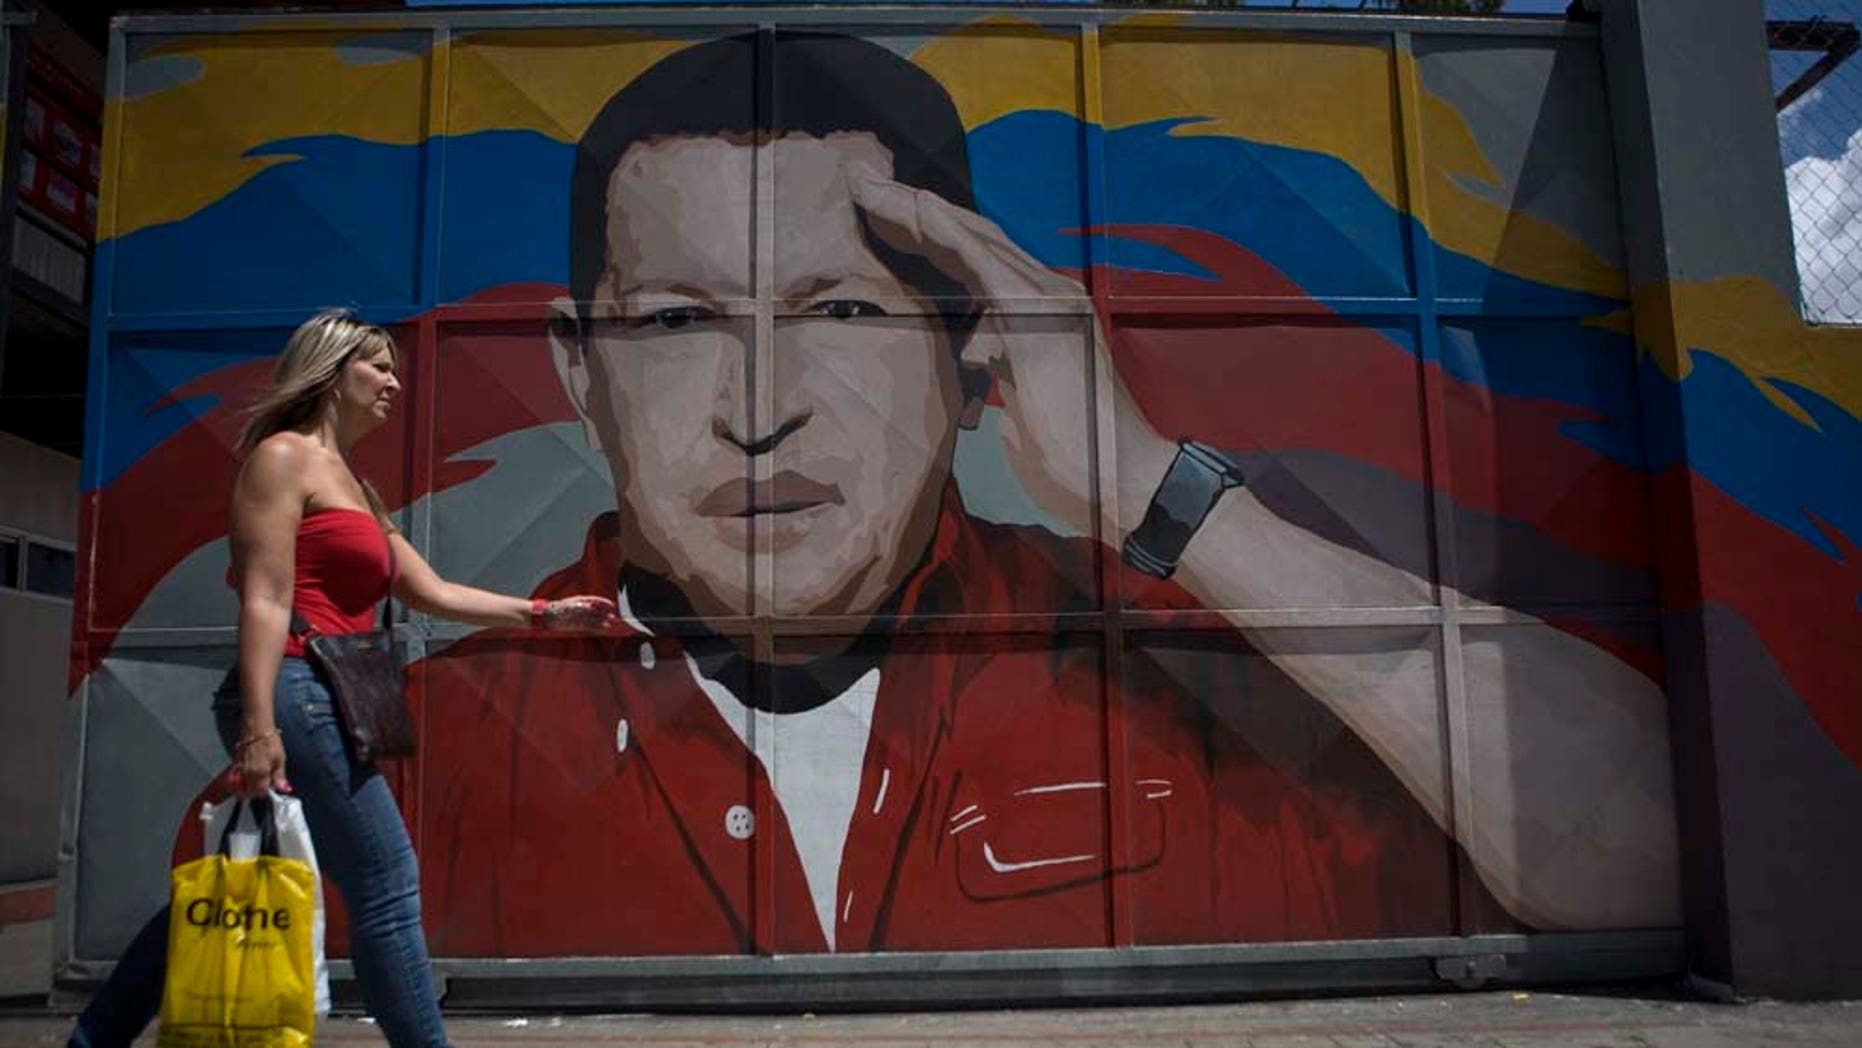 A woman walks by a gate with a painting depicting Venezuela's President Hugo Chavez in Caracas, Venezuela, Wednesday, June 29, 2011. Chavez underwent surgery in Cuba two weeks ago and has been unusually quiet since then. Allies of Chavez have insisted the leader is firmly in control of the country and improving from his operation for a pelvic abscess.(AP Photo/Ariana Cubillos)